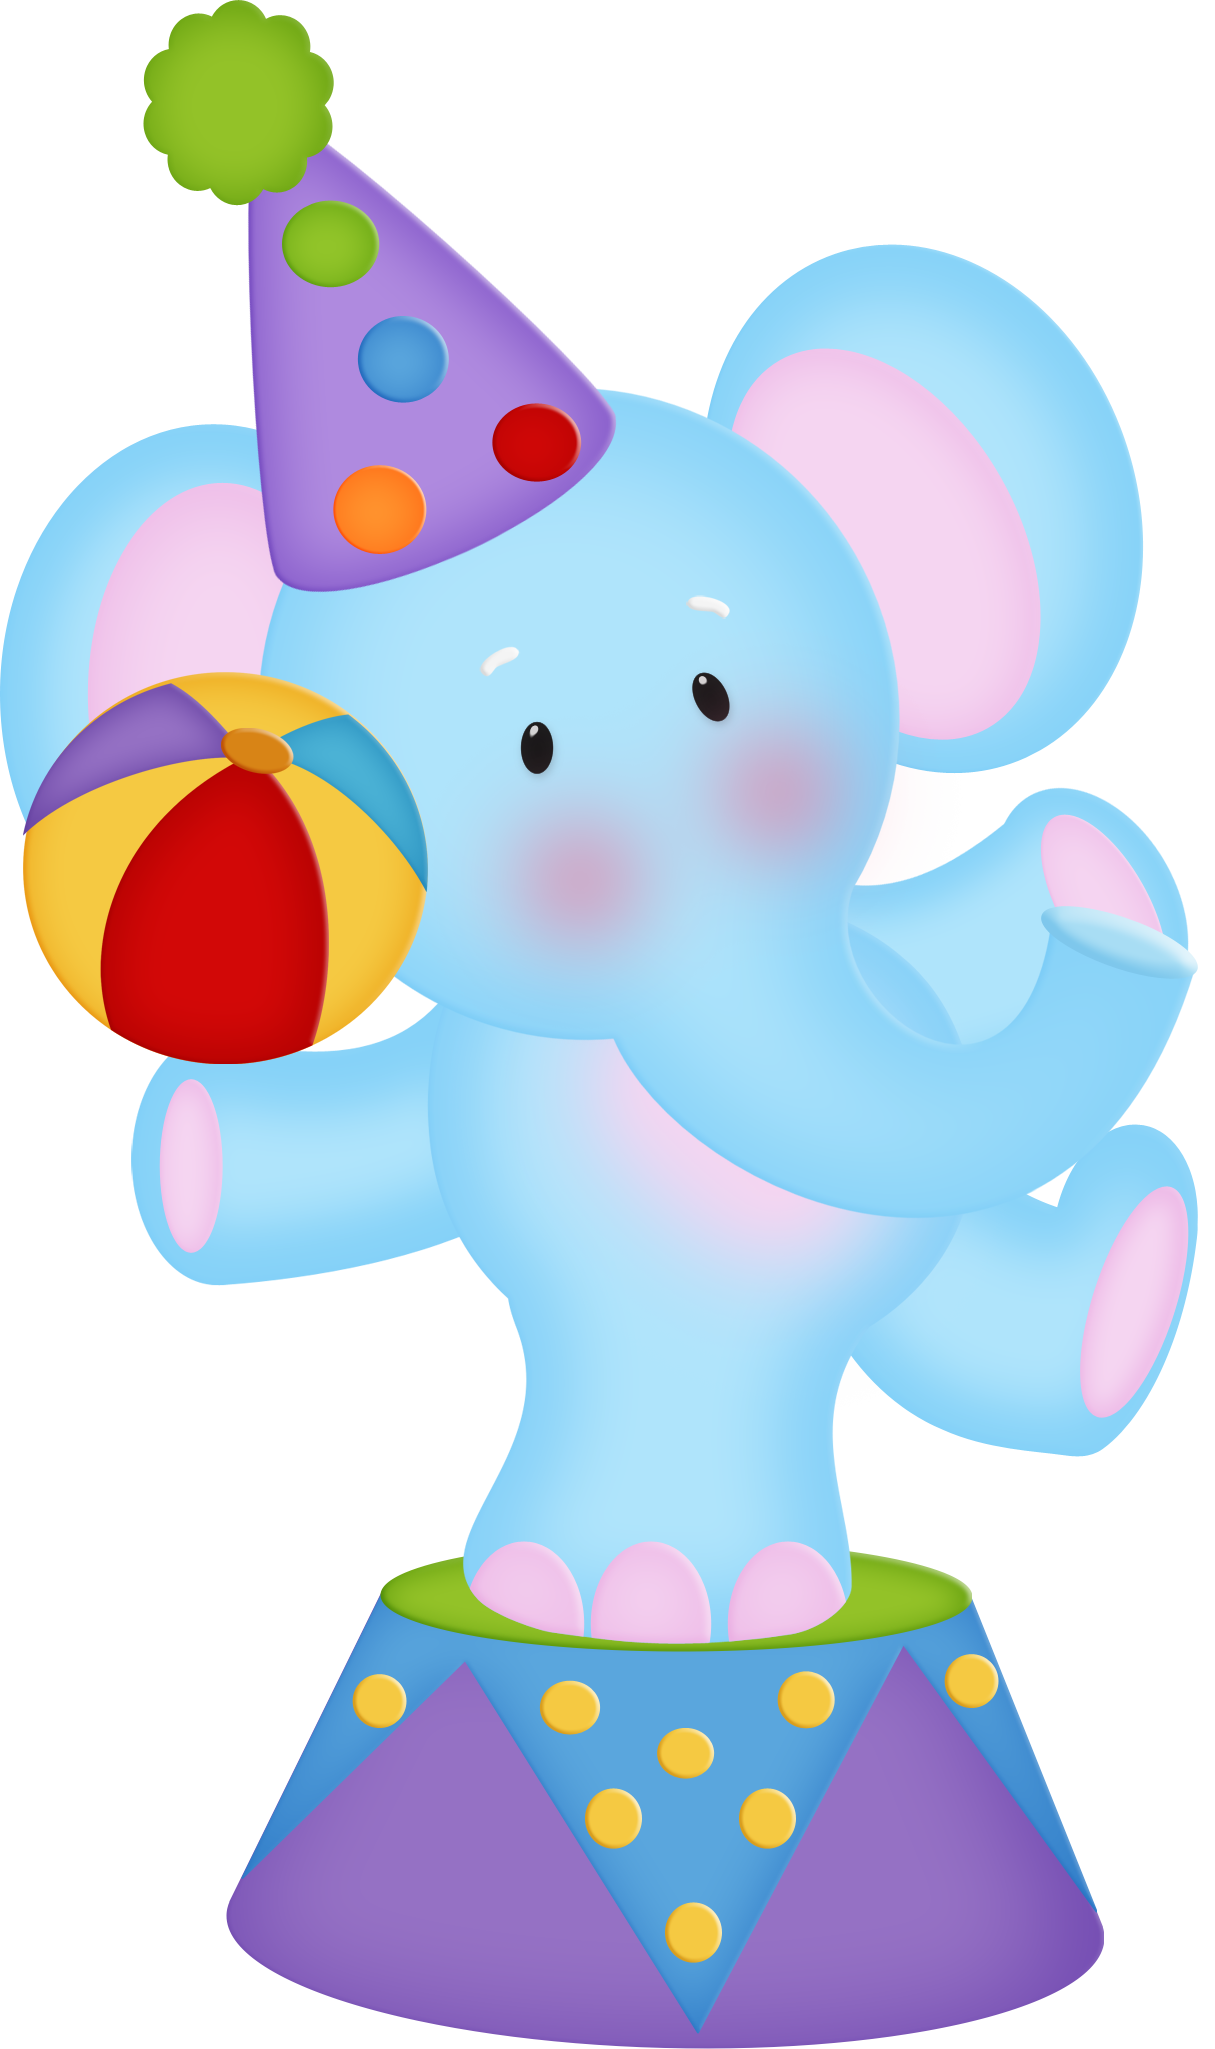 Circus elephant clip art. Strawberries clipart upo